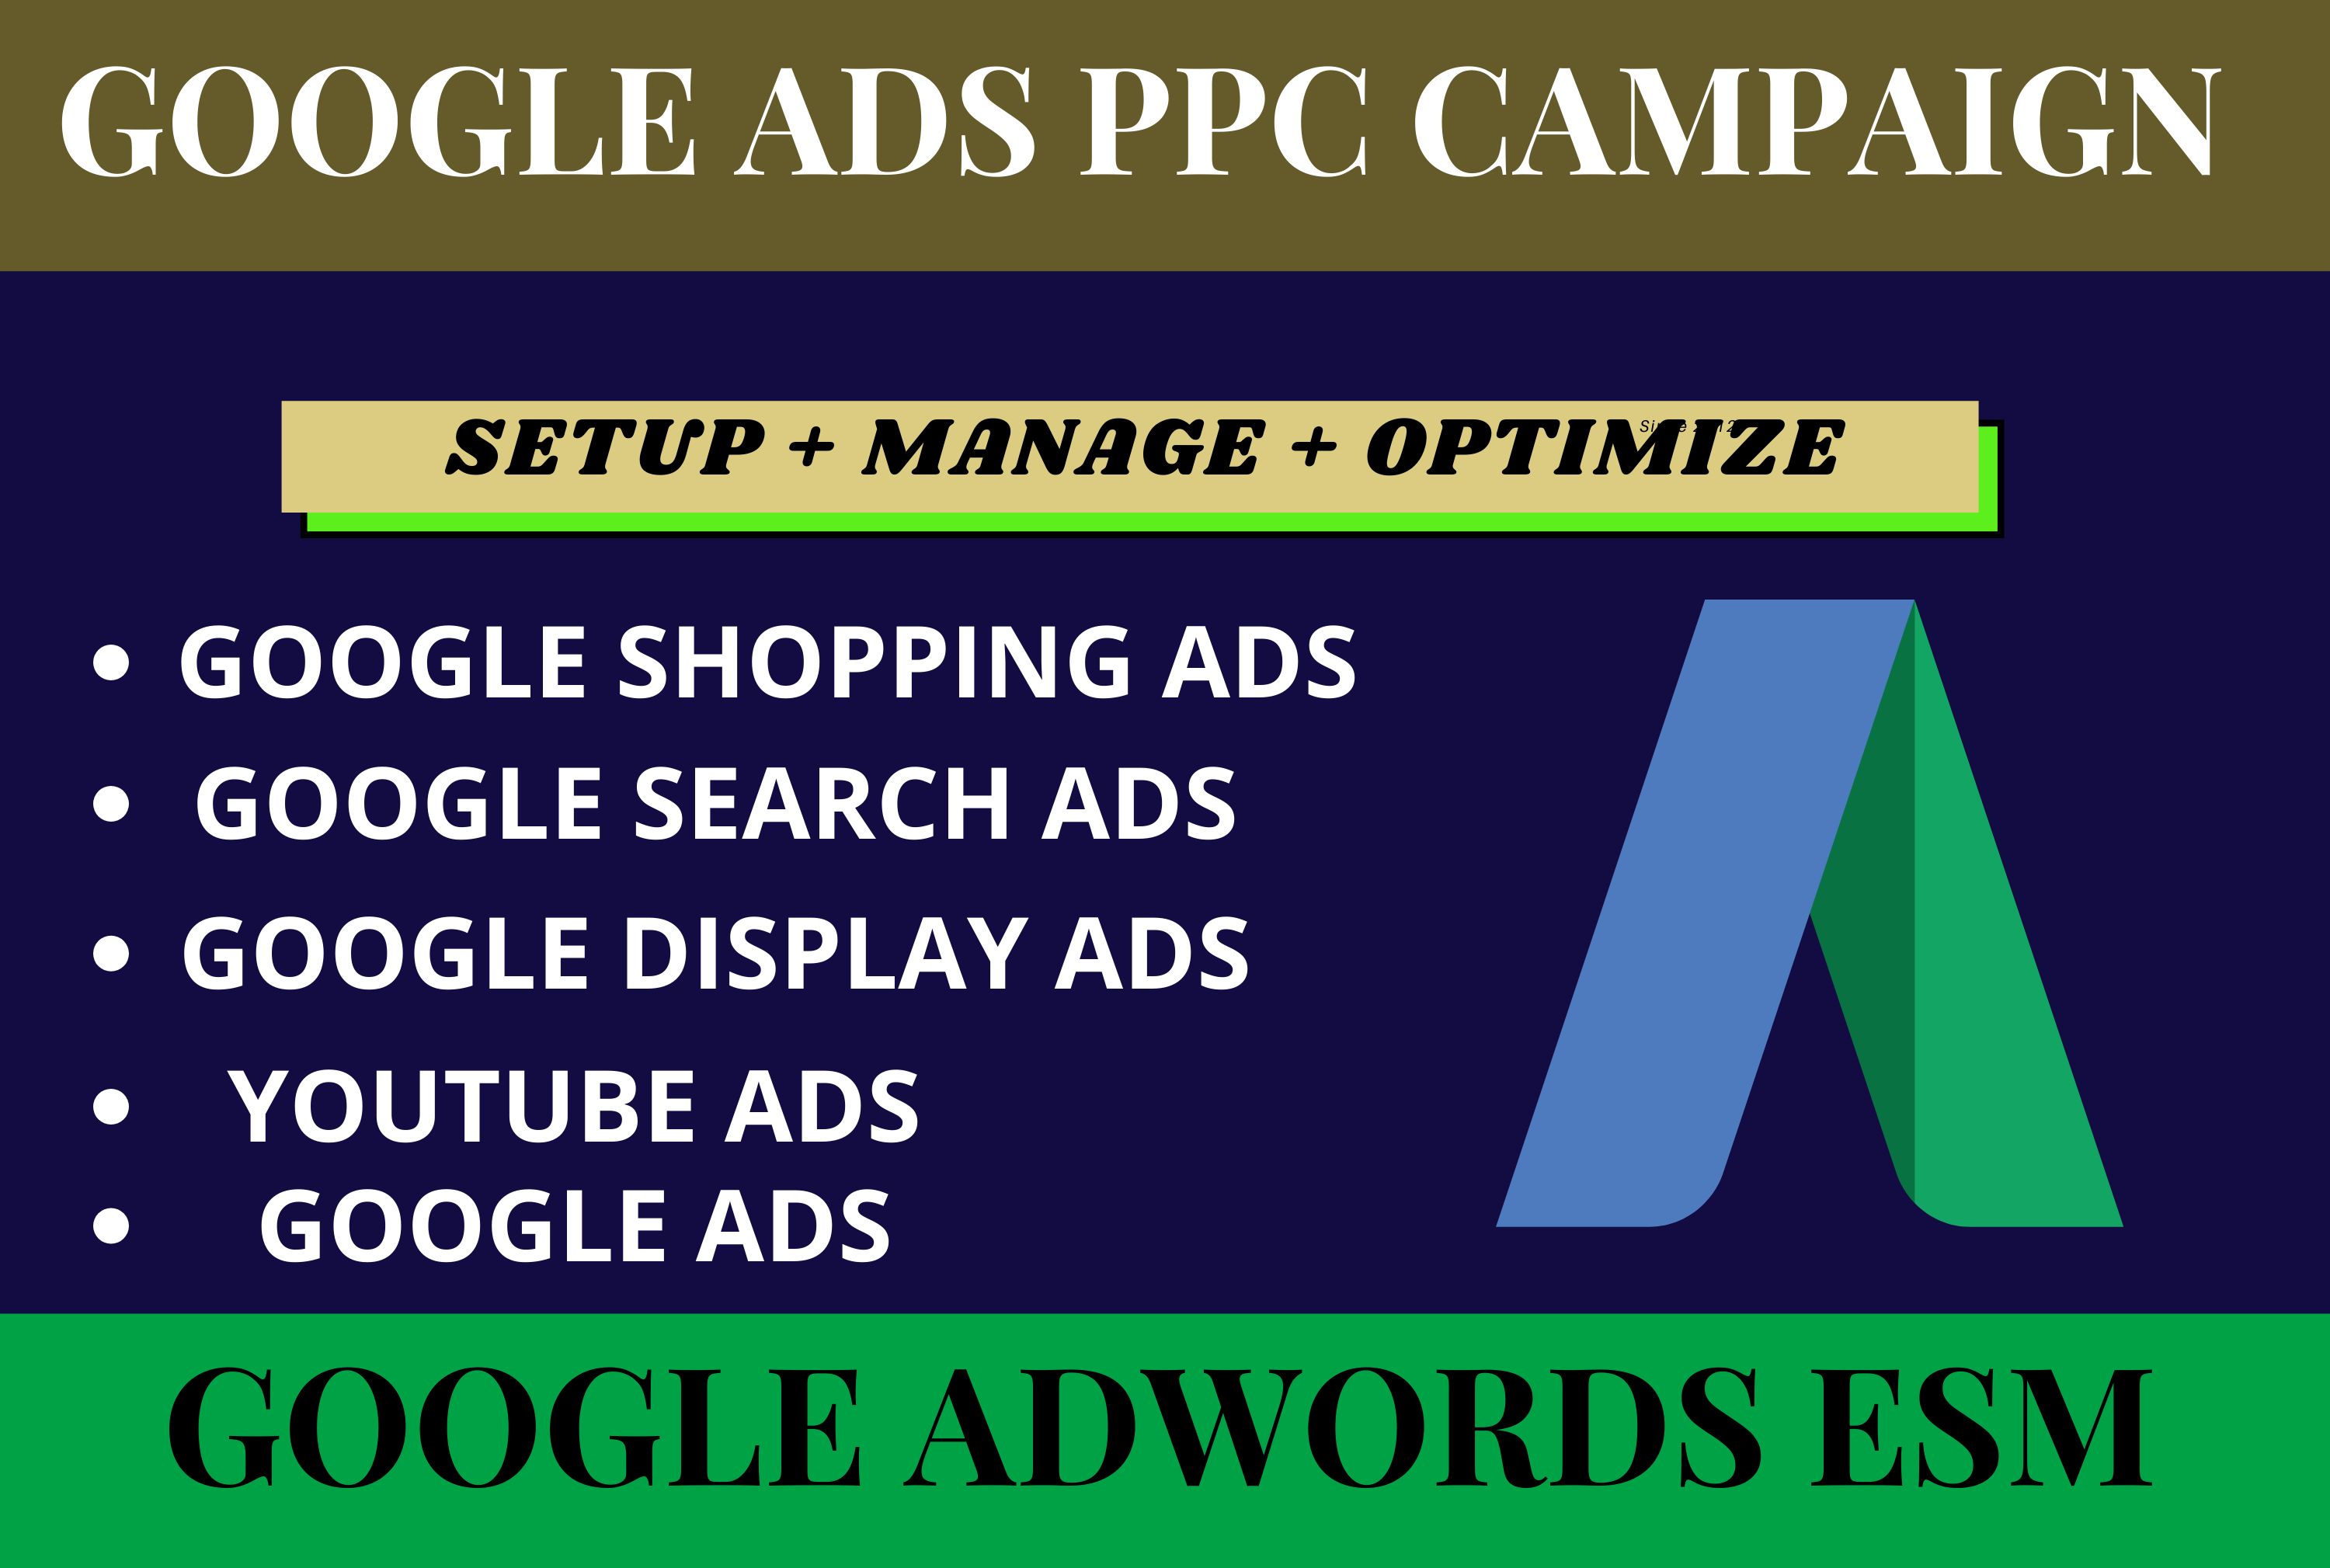 i will create and setup your Google all ads campaign